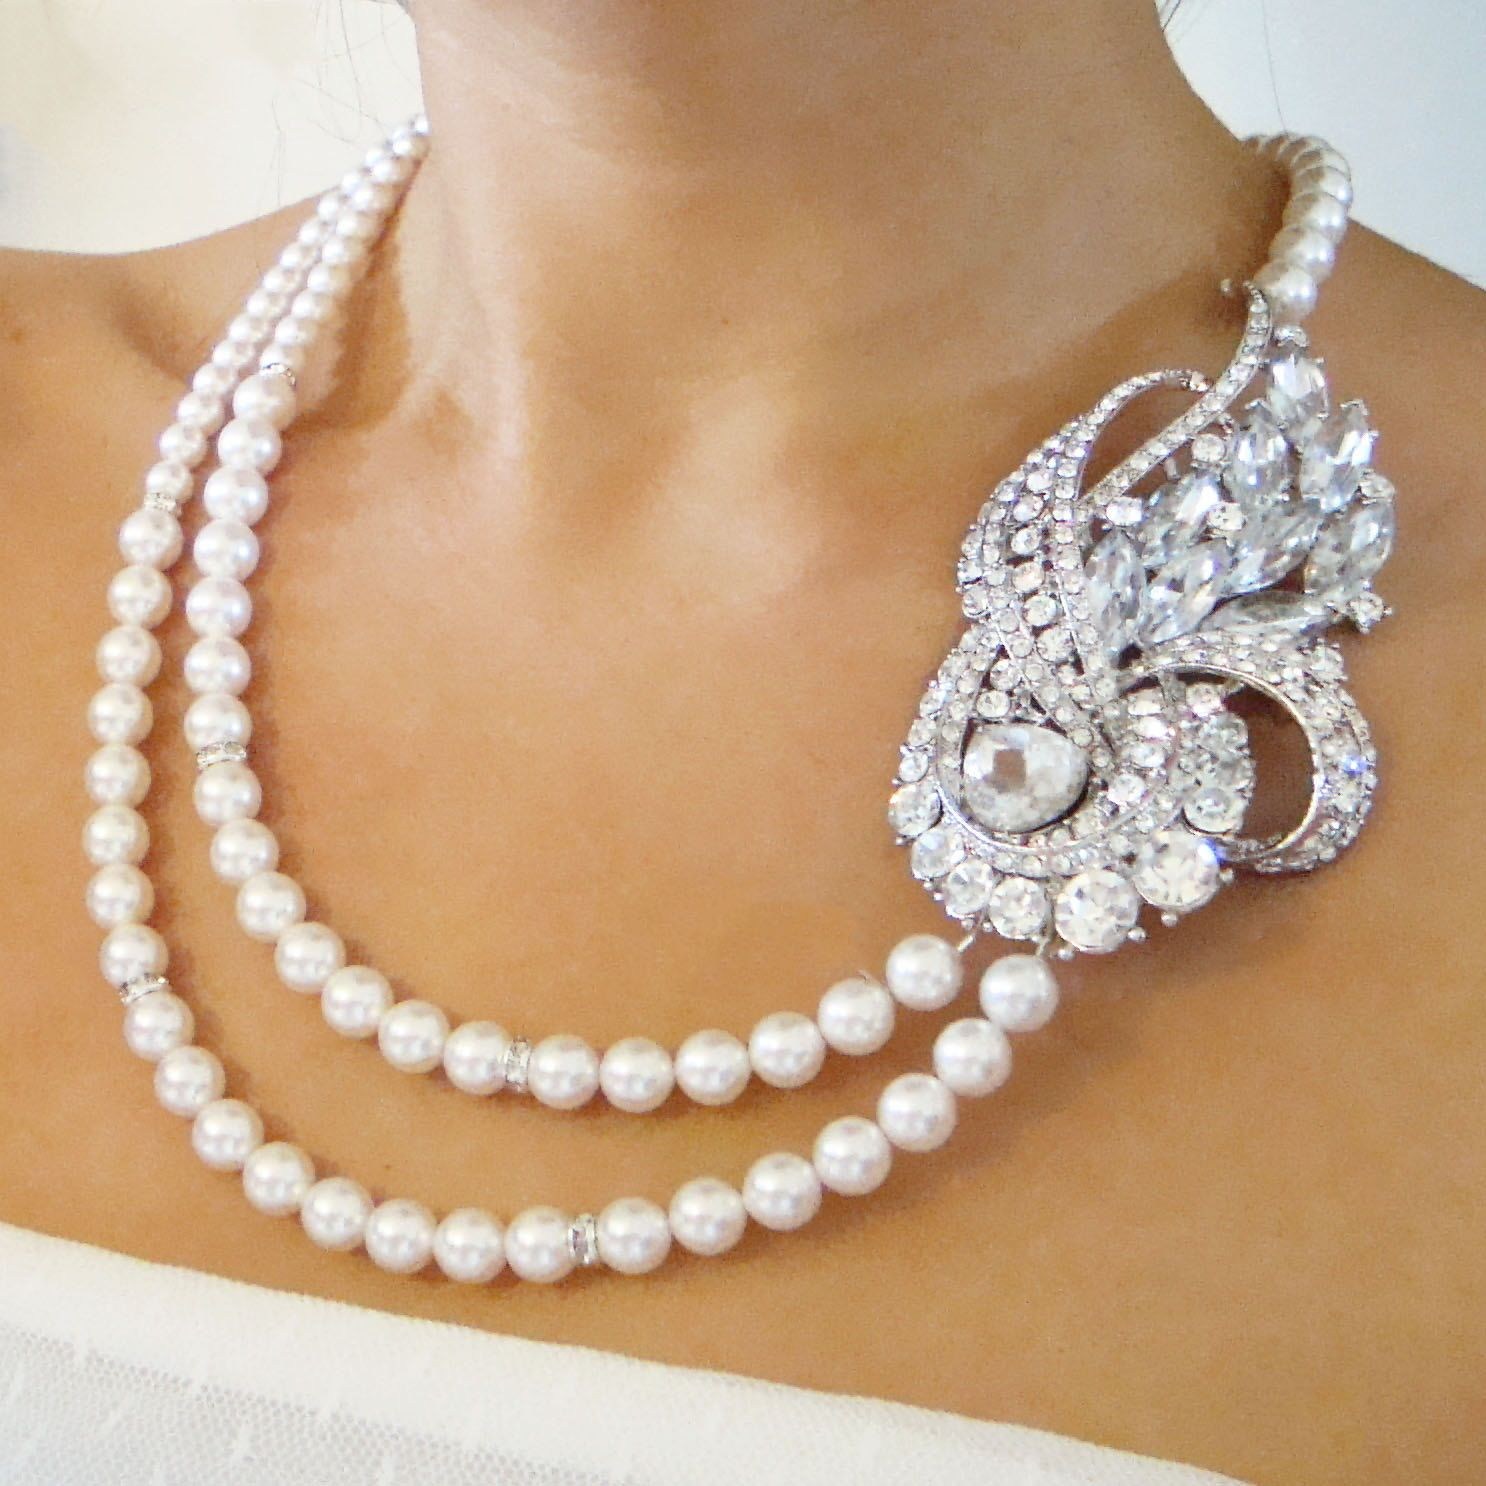 wedding jewelry Bridal Jewelry HD Wallpapers Pick